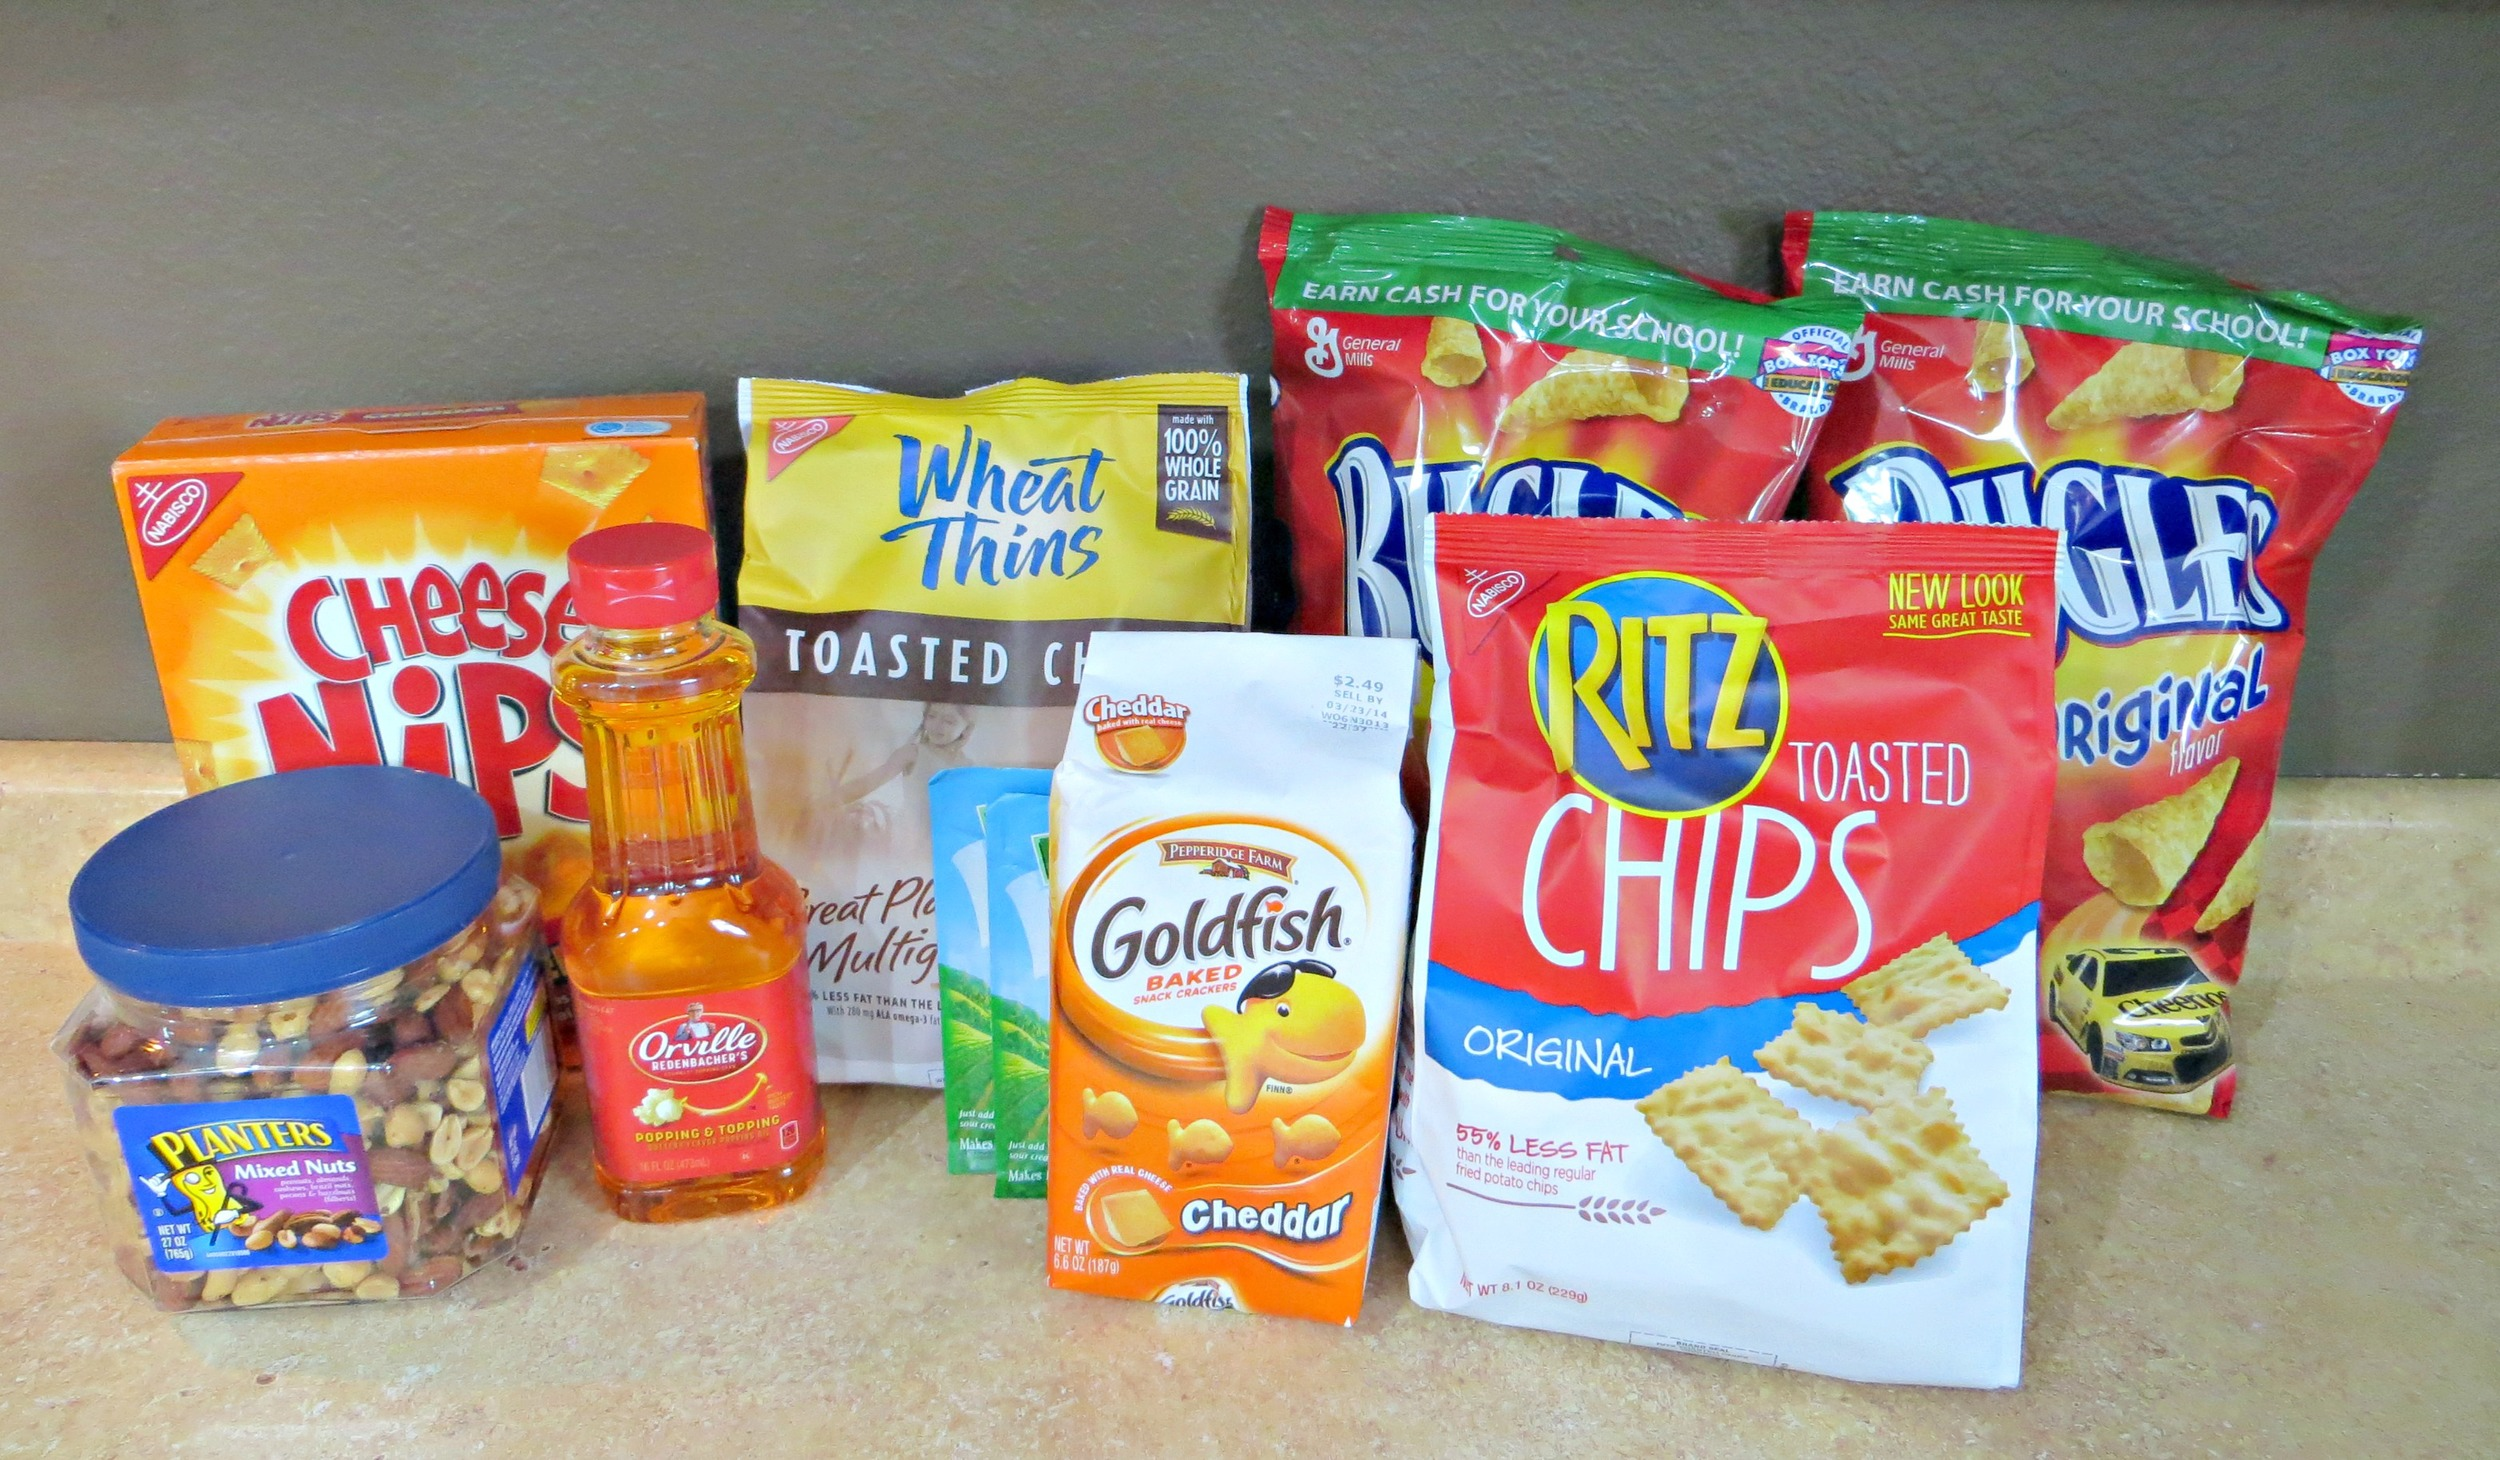 Dolly's Mix: A Party Snack Mix